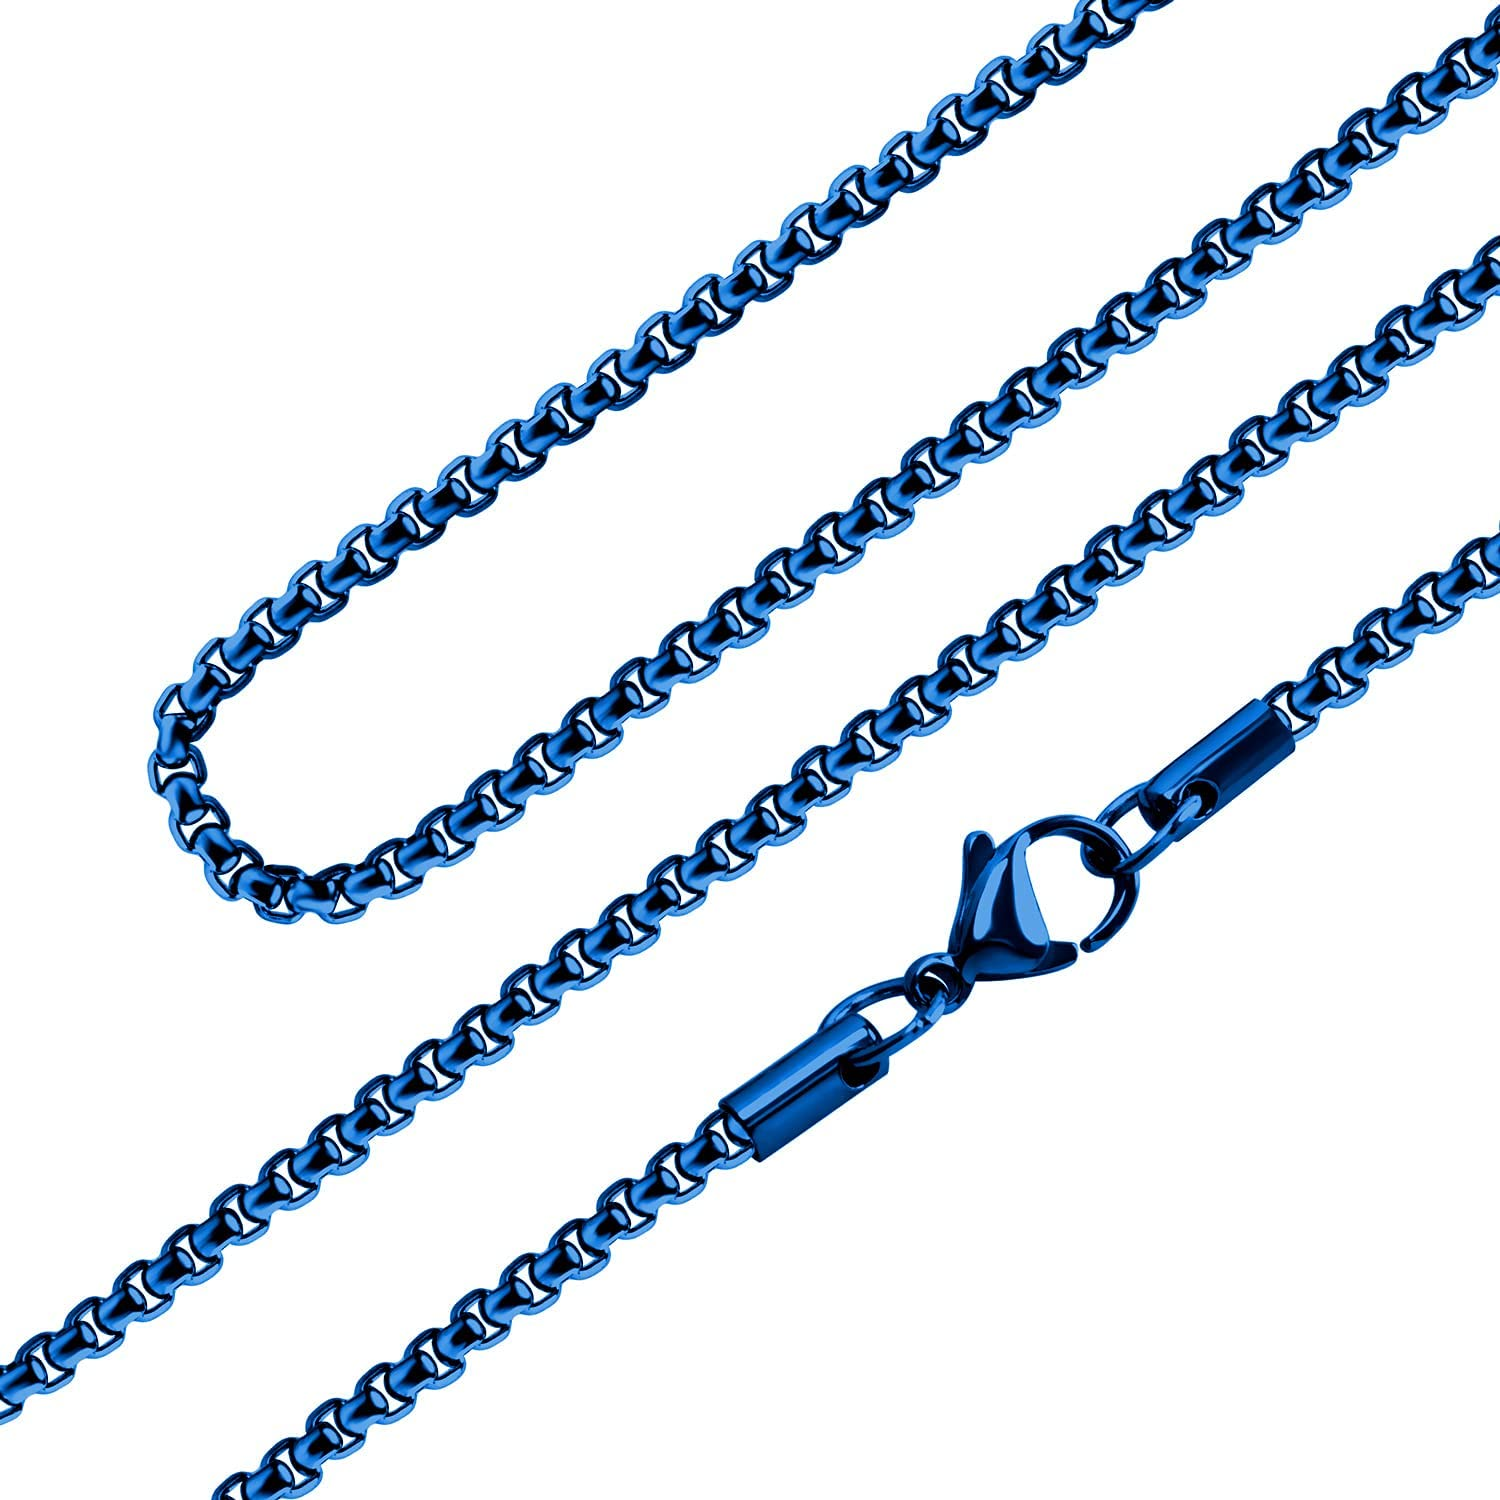 555Jewelry 2.5mm Stainless Steel Box Chain Necklace for Men & Women, 16-28 Inch